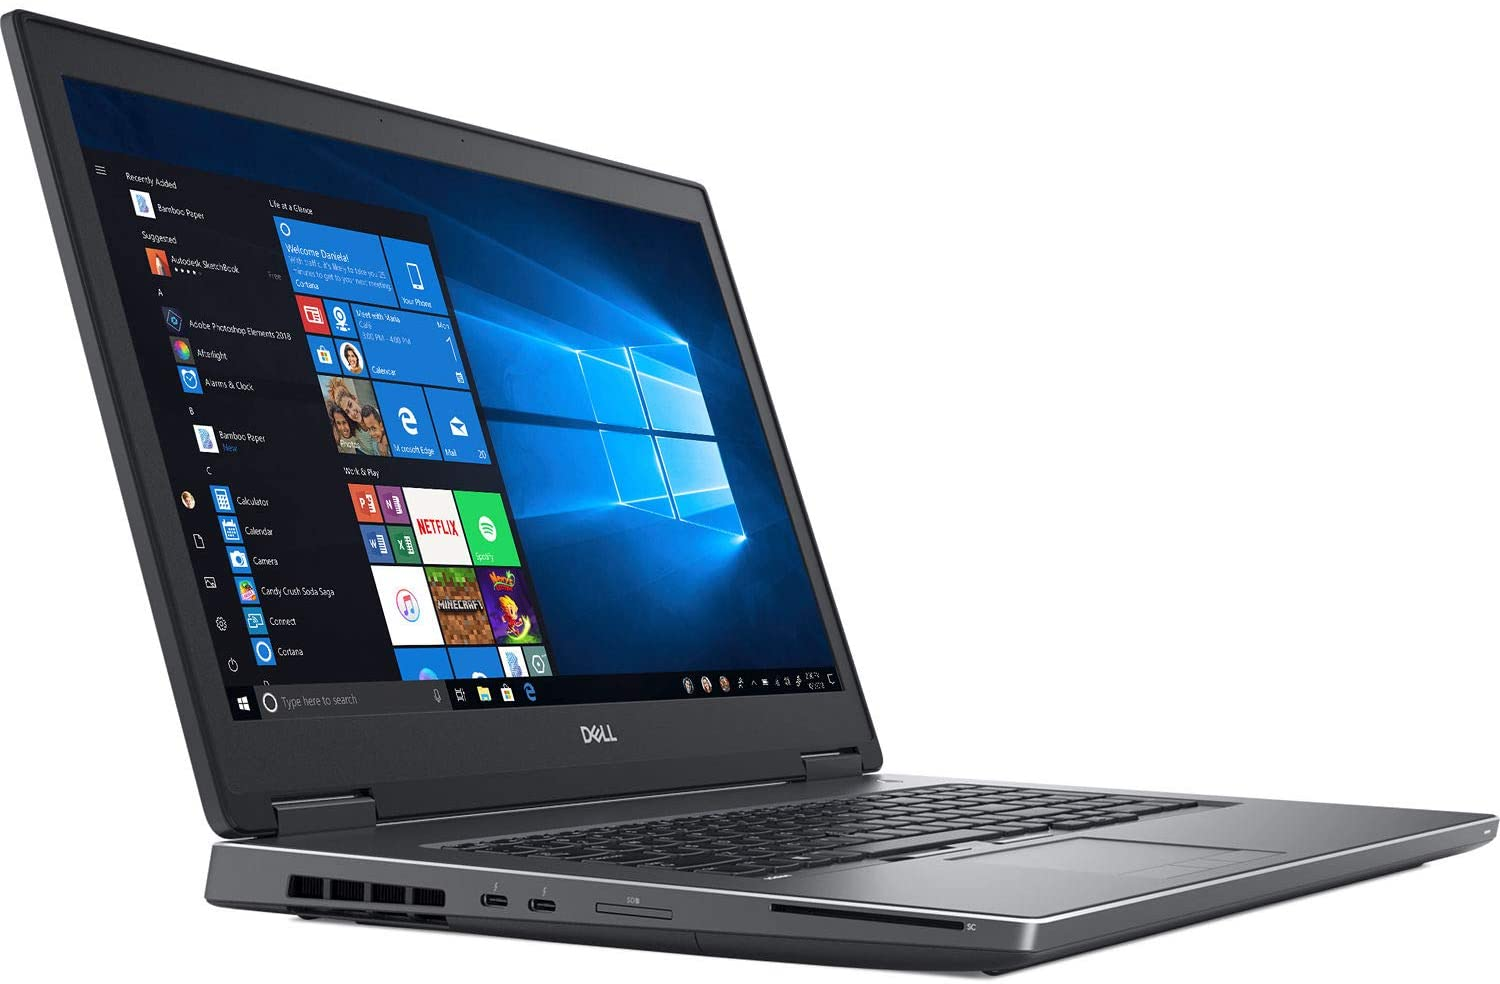 "Dell Precision 7730 1920 X 1080 17.3"" LCD Mobile Workstation with Intel Core i7-8850H Hexa-core 2.6 GHz, 16GB RAM, 512GB SSD"